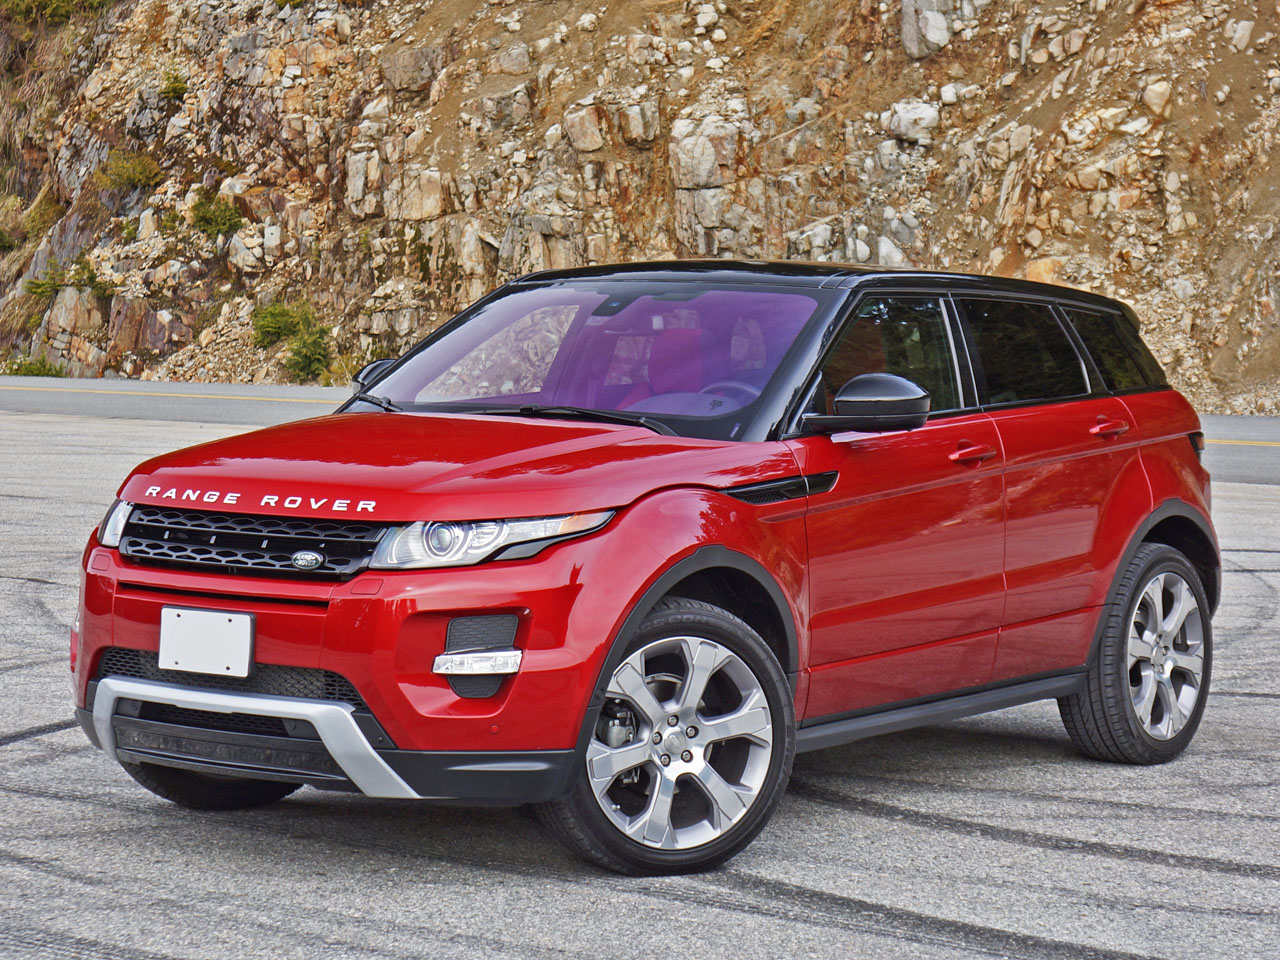 2015 land rover range rover evoque dynamic road test review carcostcanada. Black Bedroom Furniture Sets. Home Design Ideas